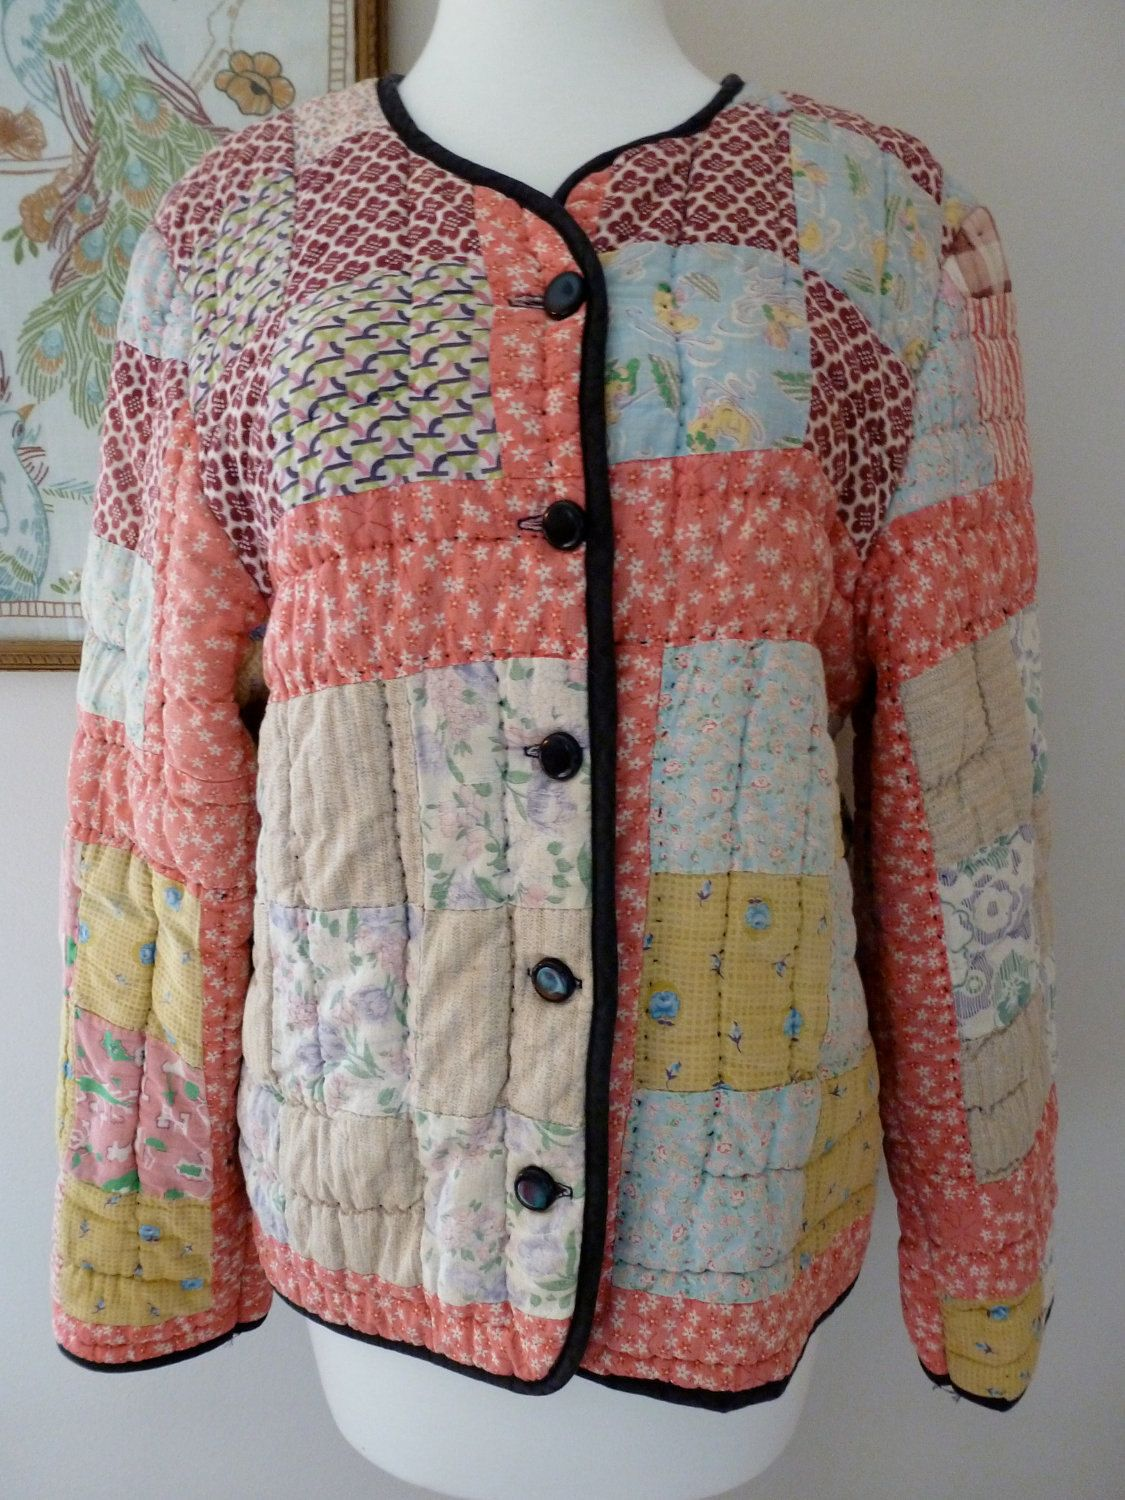 30 S Quilt Coat Cotton Feedsack Patchwork Quilted Jacket L